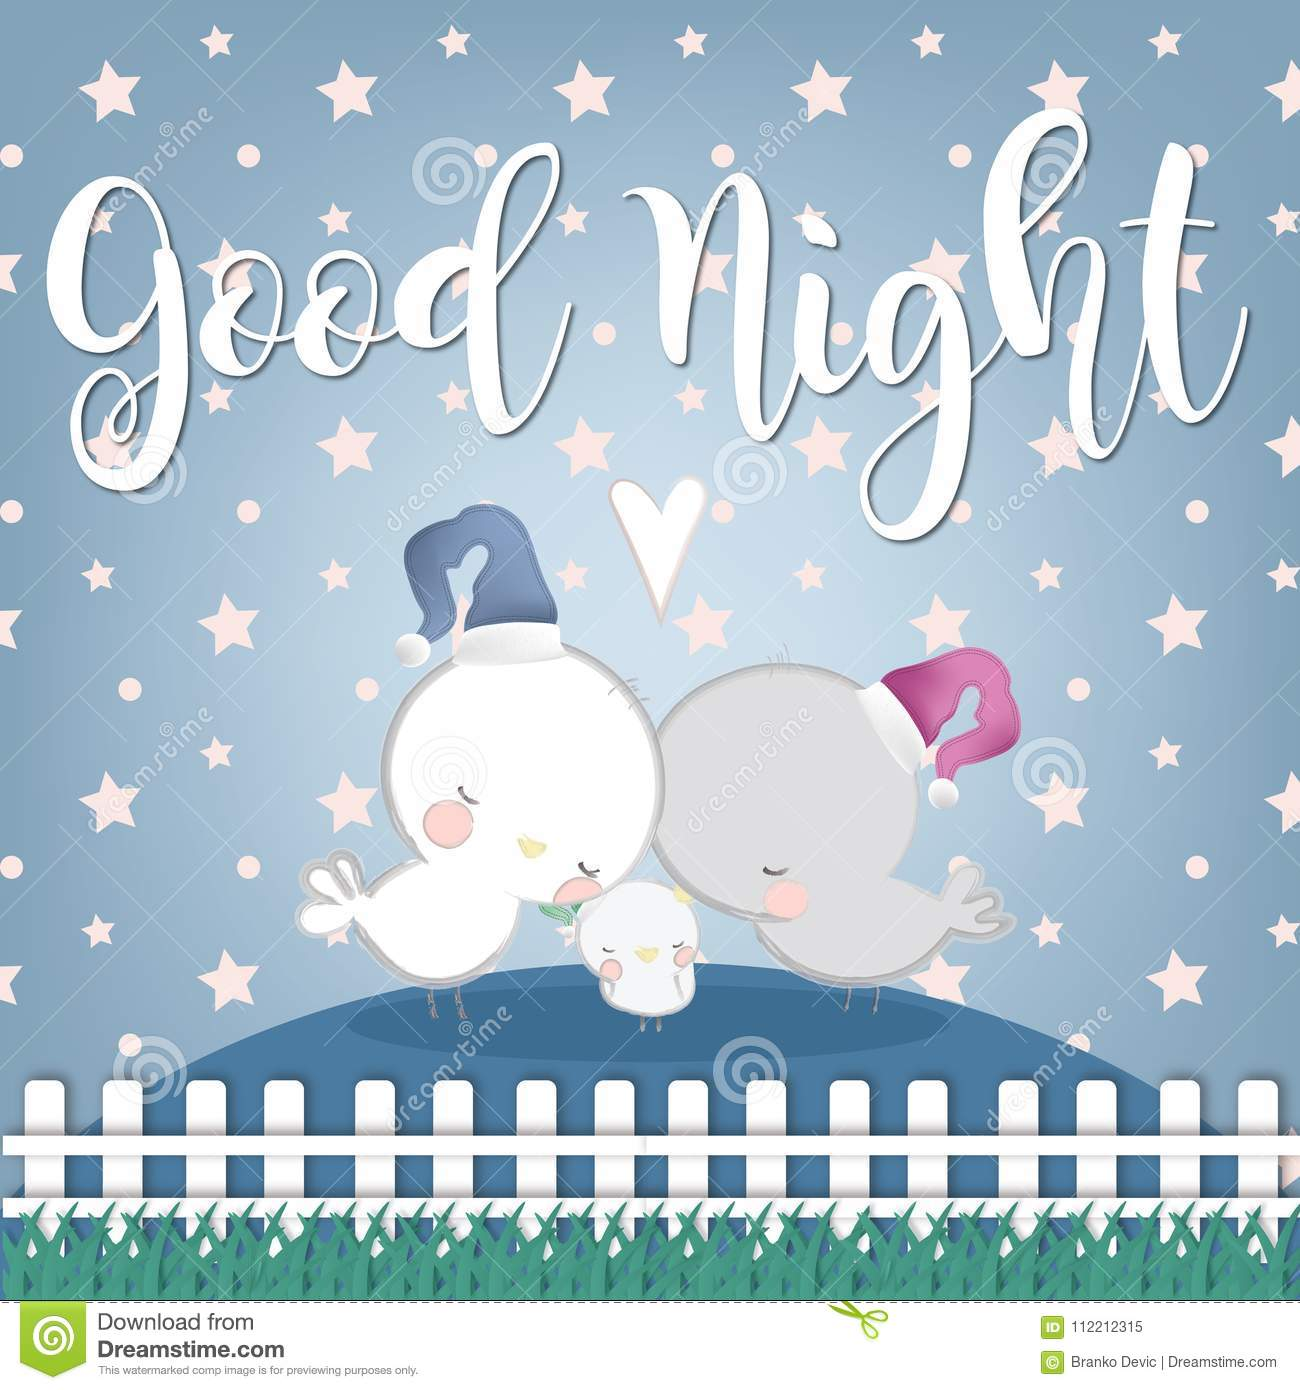 Good Night And Sweet Dreams Illustration Design Stock